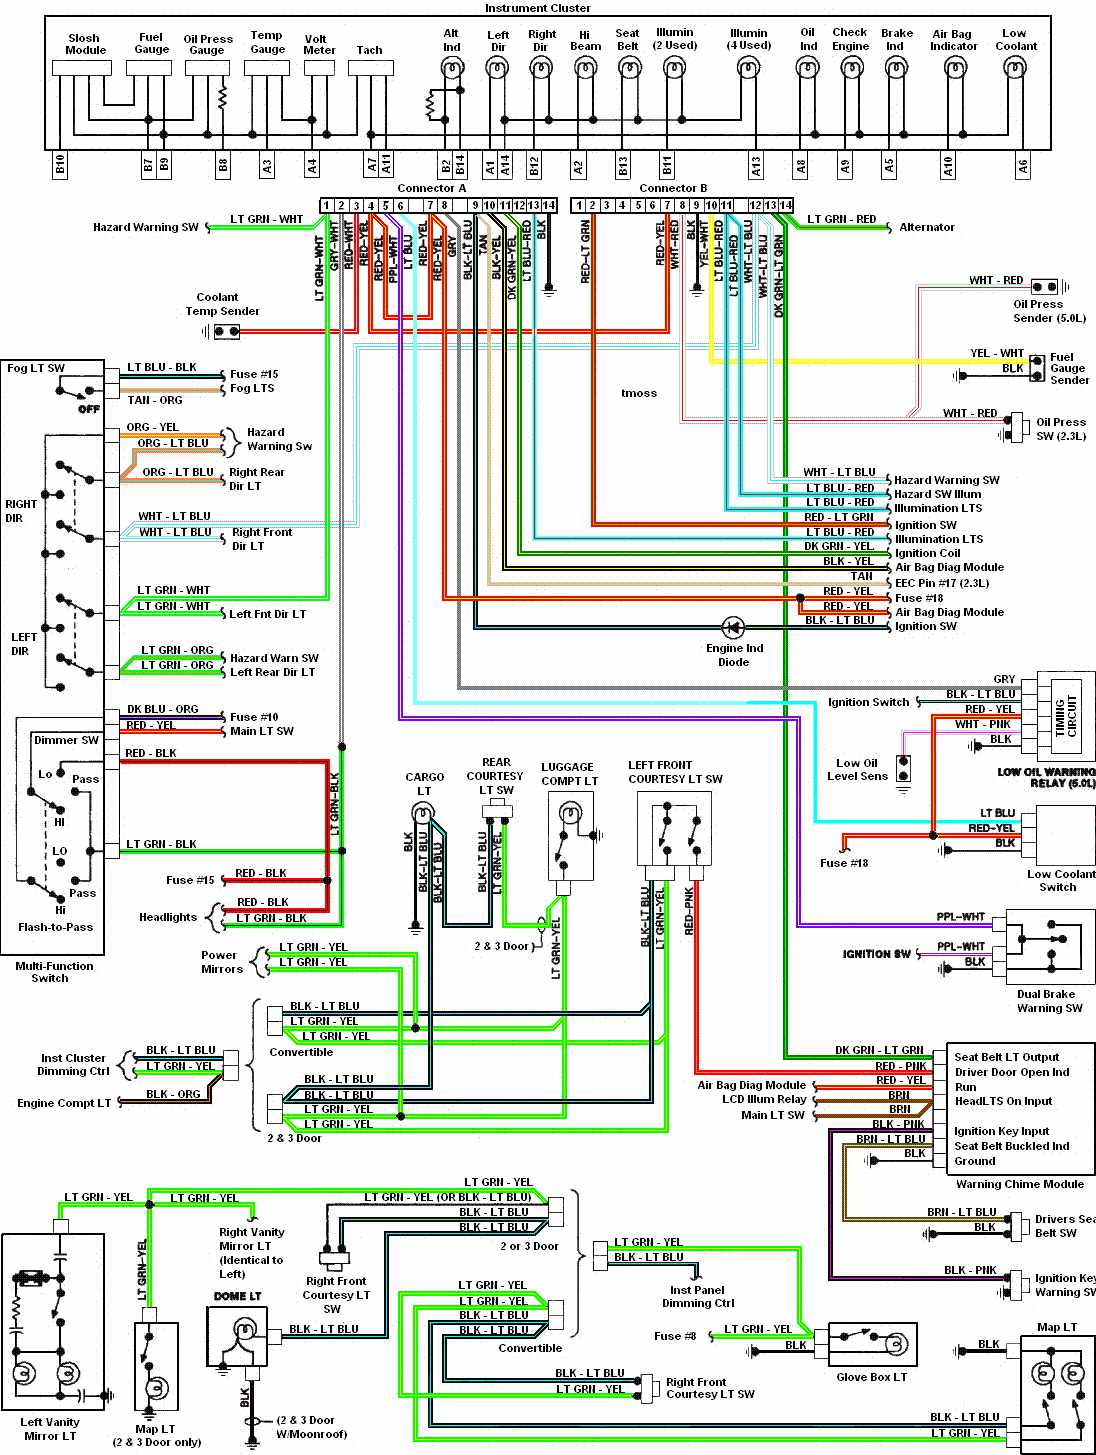 Ignition Switch Wiring Diagram For Ford Explorer on